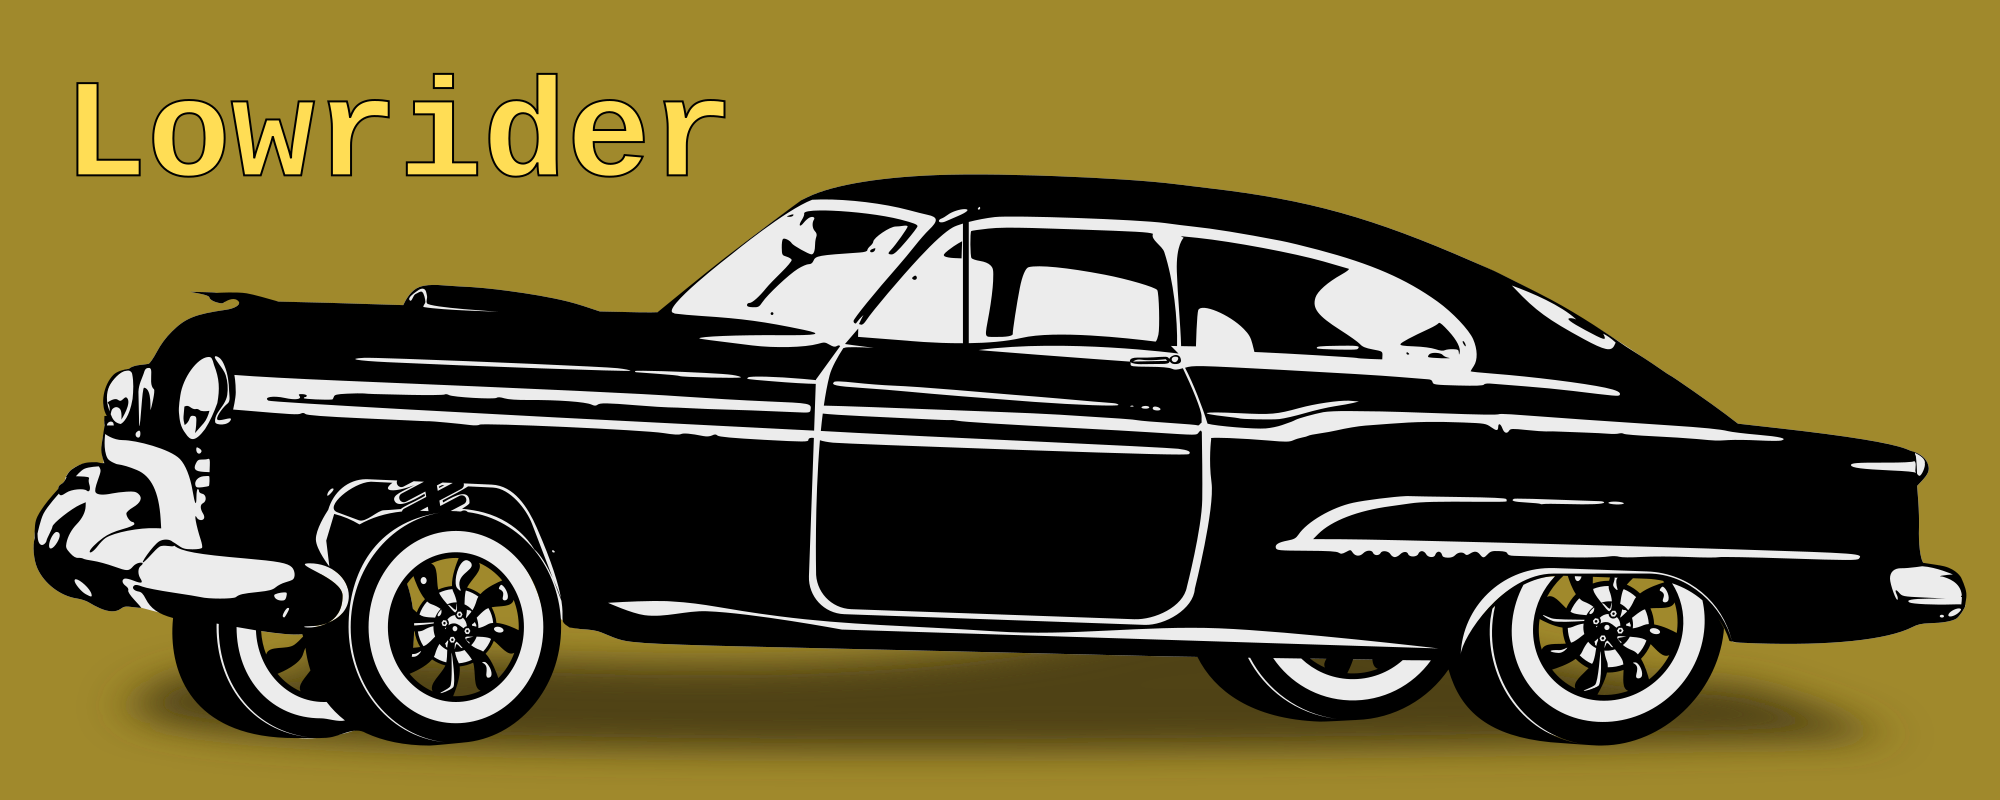 Lowrider by Dux Phoenix - Customized Oldsmobile 1950. A lowrider (sometimes low rider) is an automobile so that its ground clearance is less than its design specification. Many Lowriders feature custom hydraulic suspensions that allow the driver to alter the ride height at will.